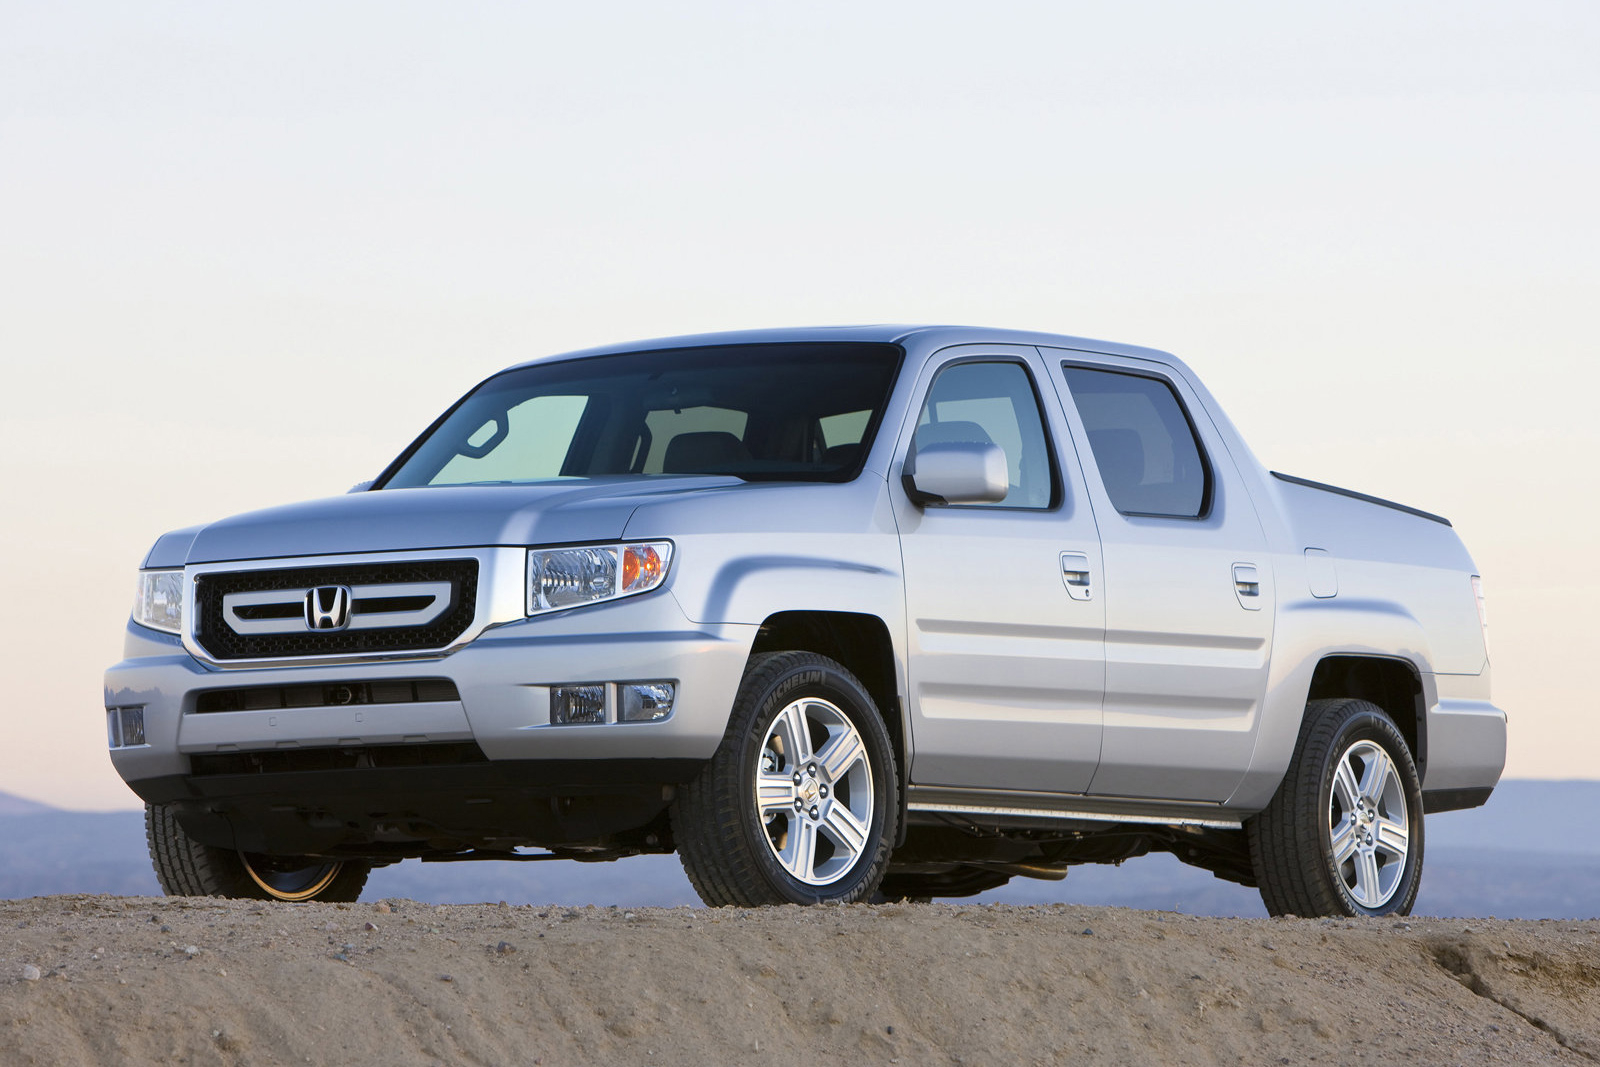 used honda ridgeline for sale by owner buy cheap honda pickup trucks. Black Bedroom Furniture Sets. Home Design Ideas